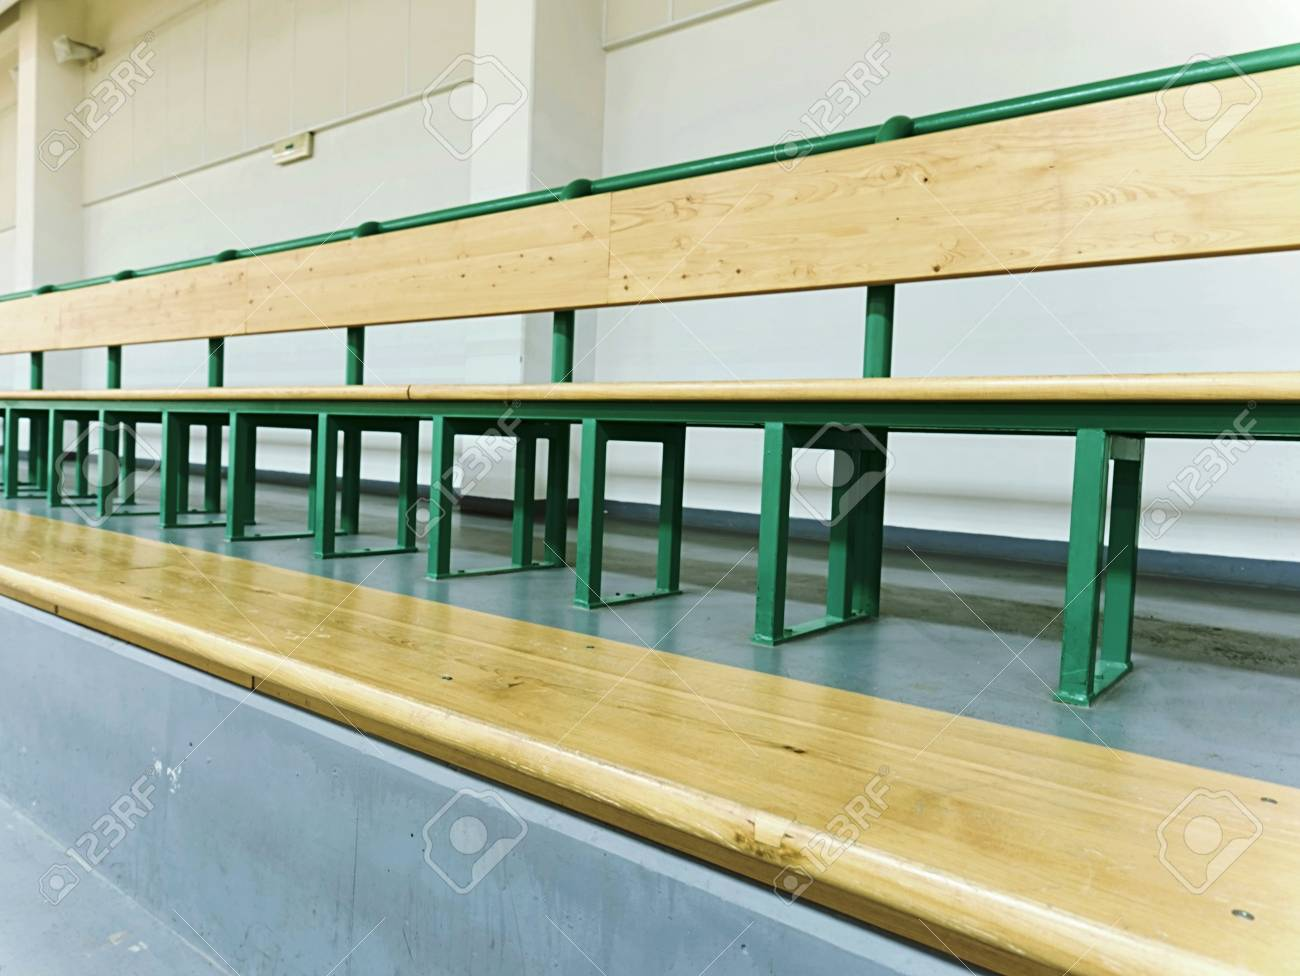 Miraculous Empty Wooden Seats In A Sports Stadium Tribune For Fans Of Beatyapartments Chair Design Images Beatyapartmentscom